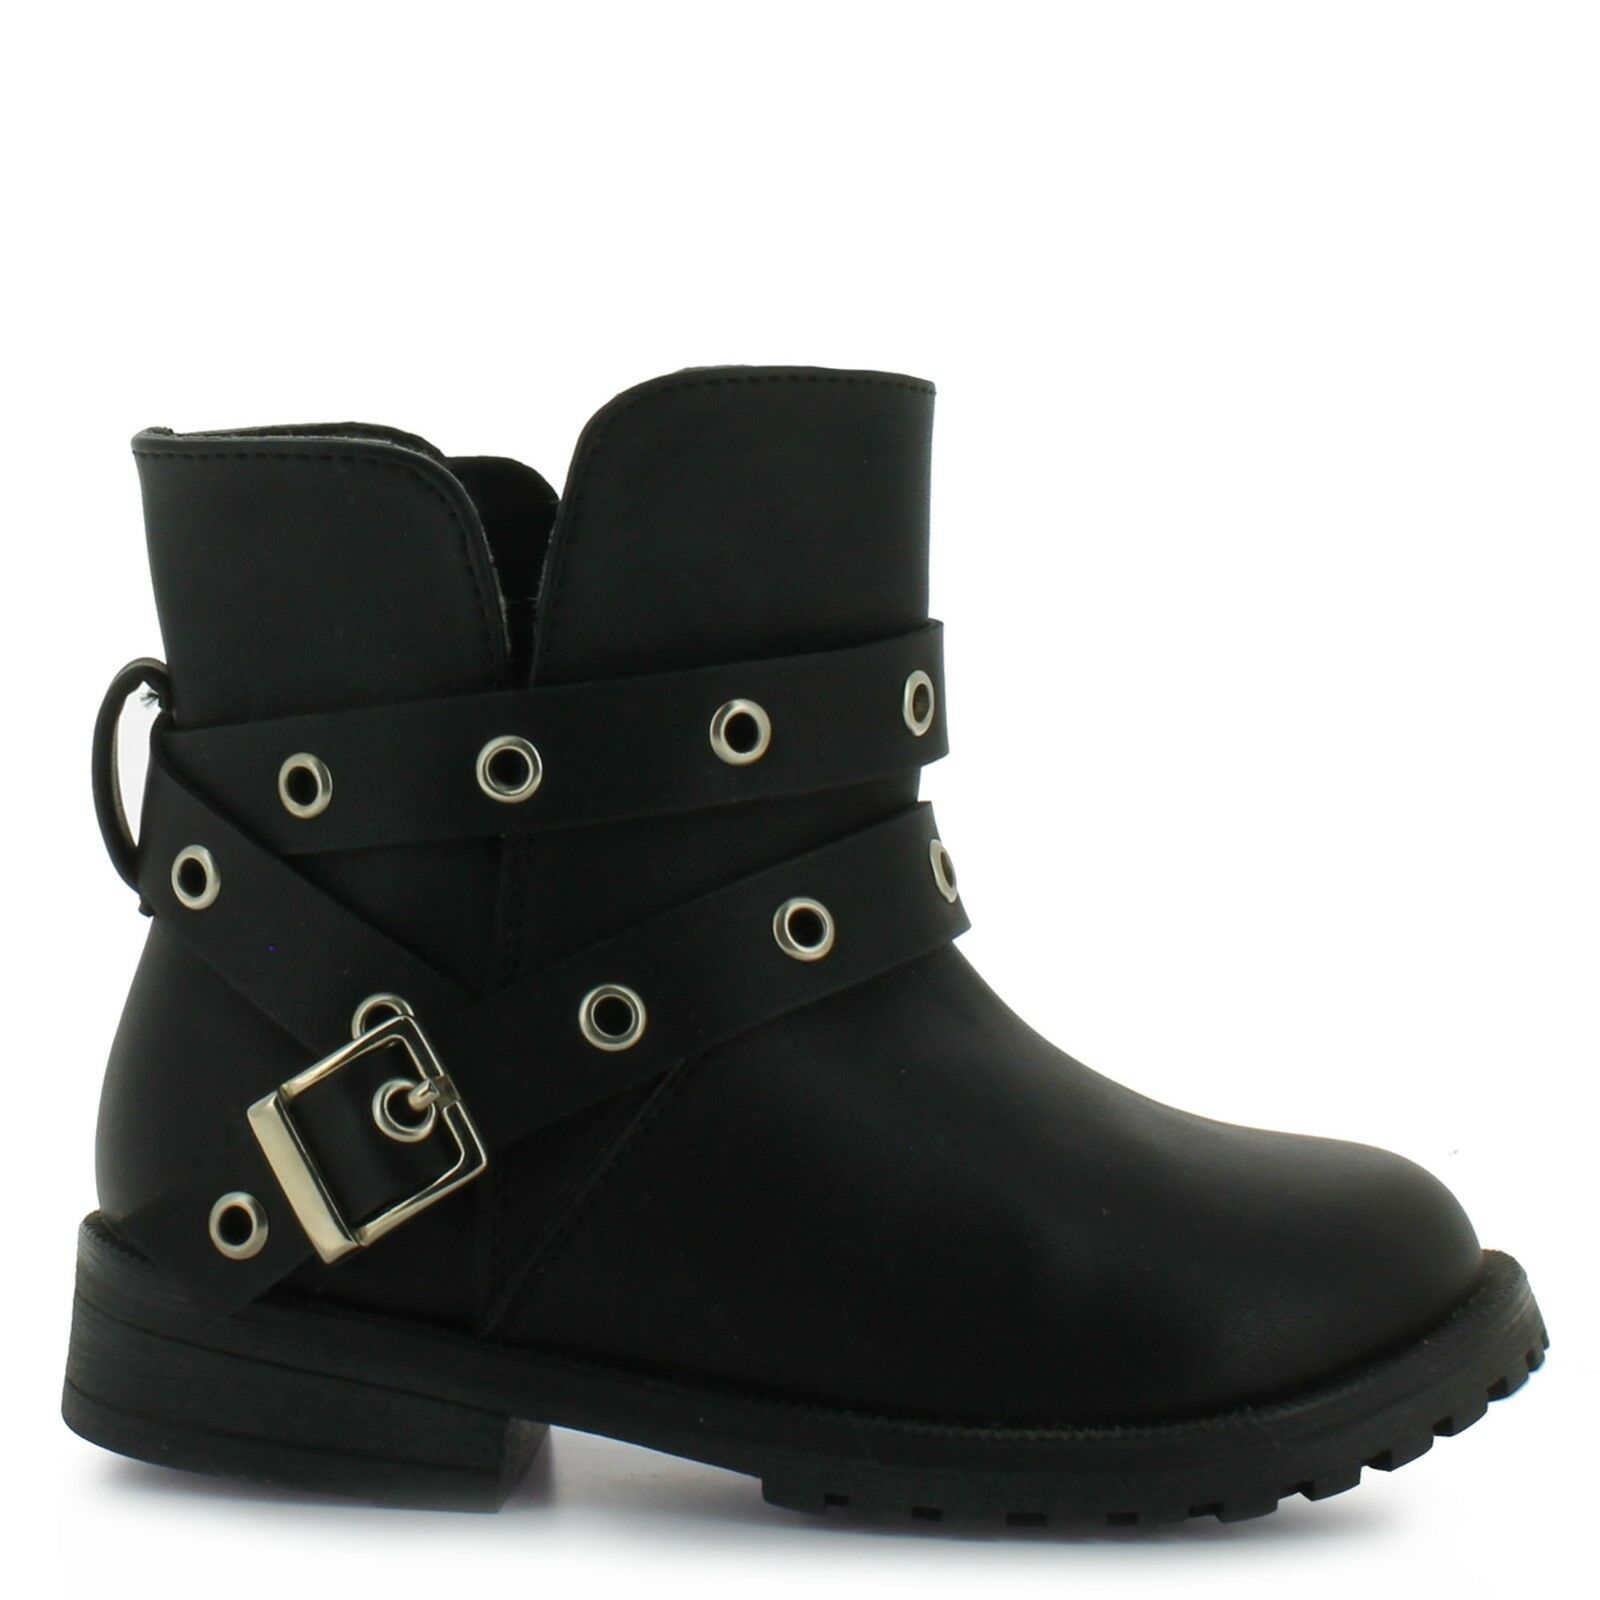 Tropicana ankle boot for women